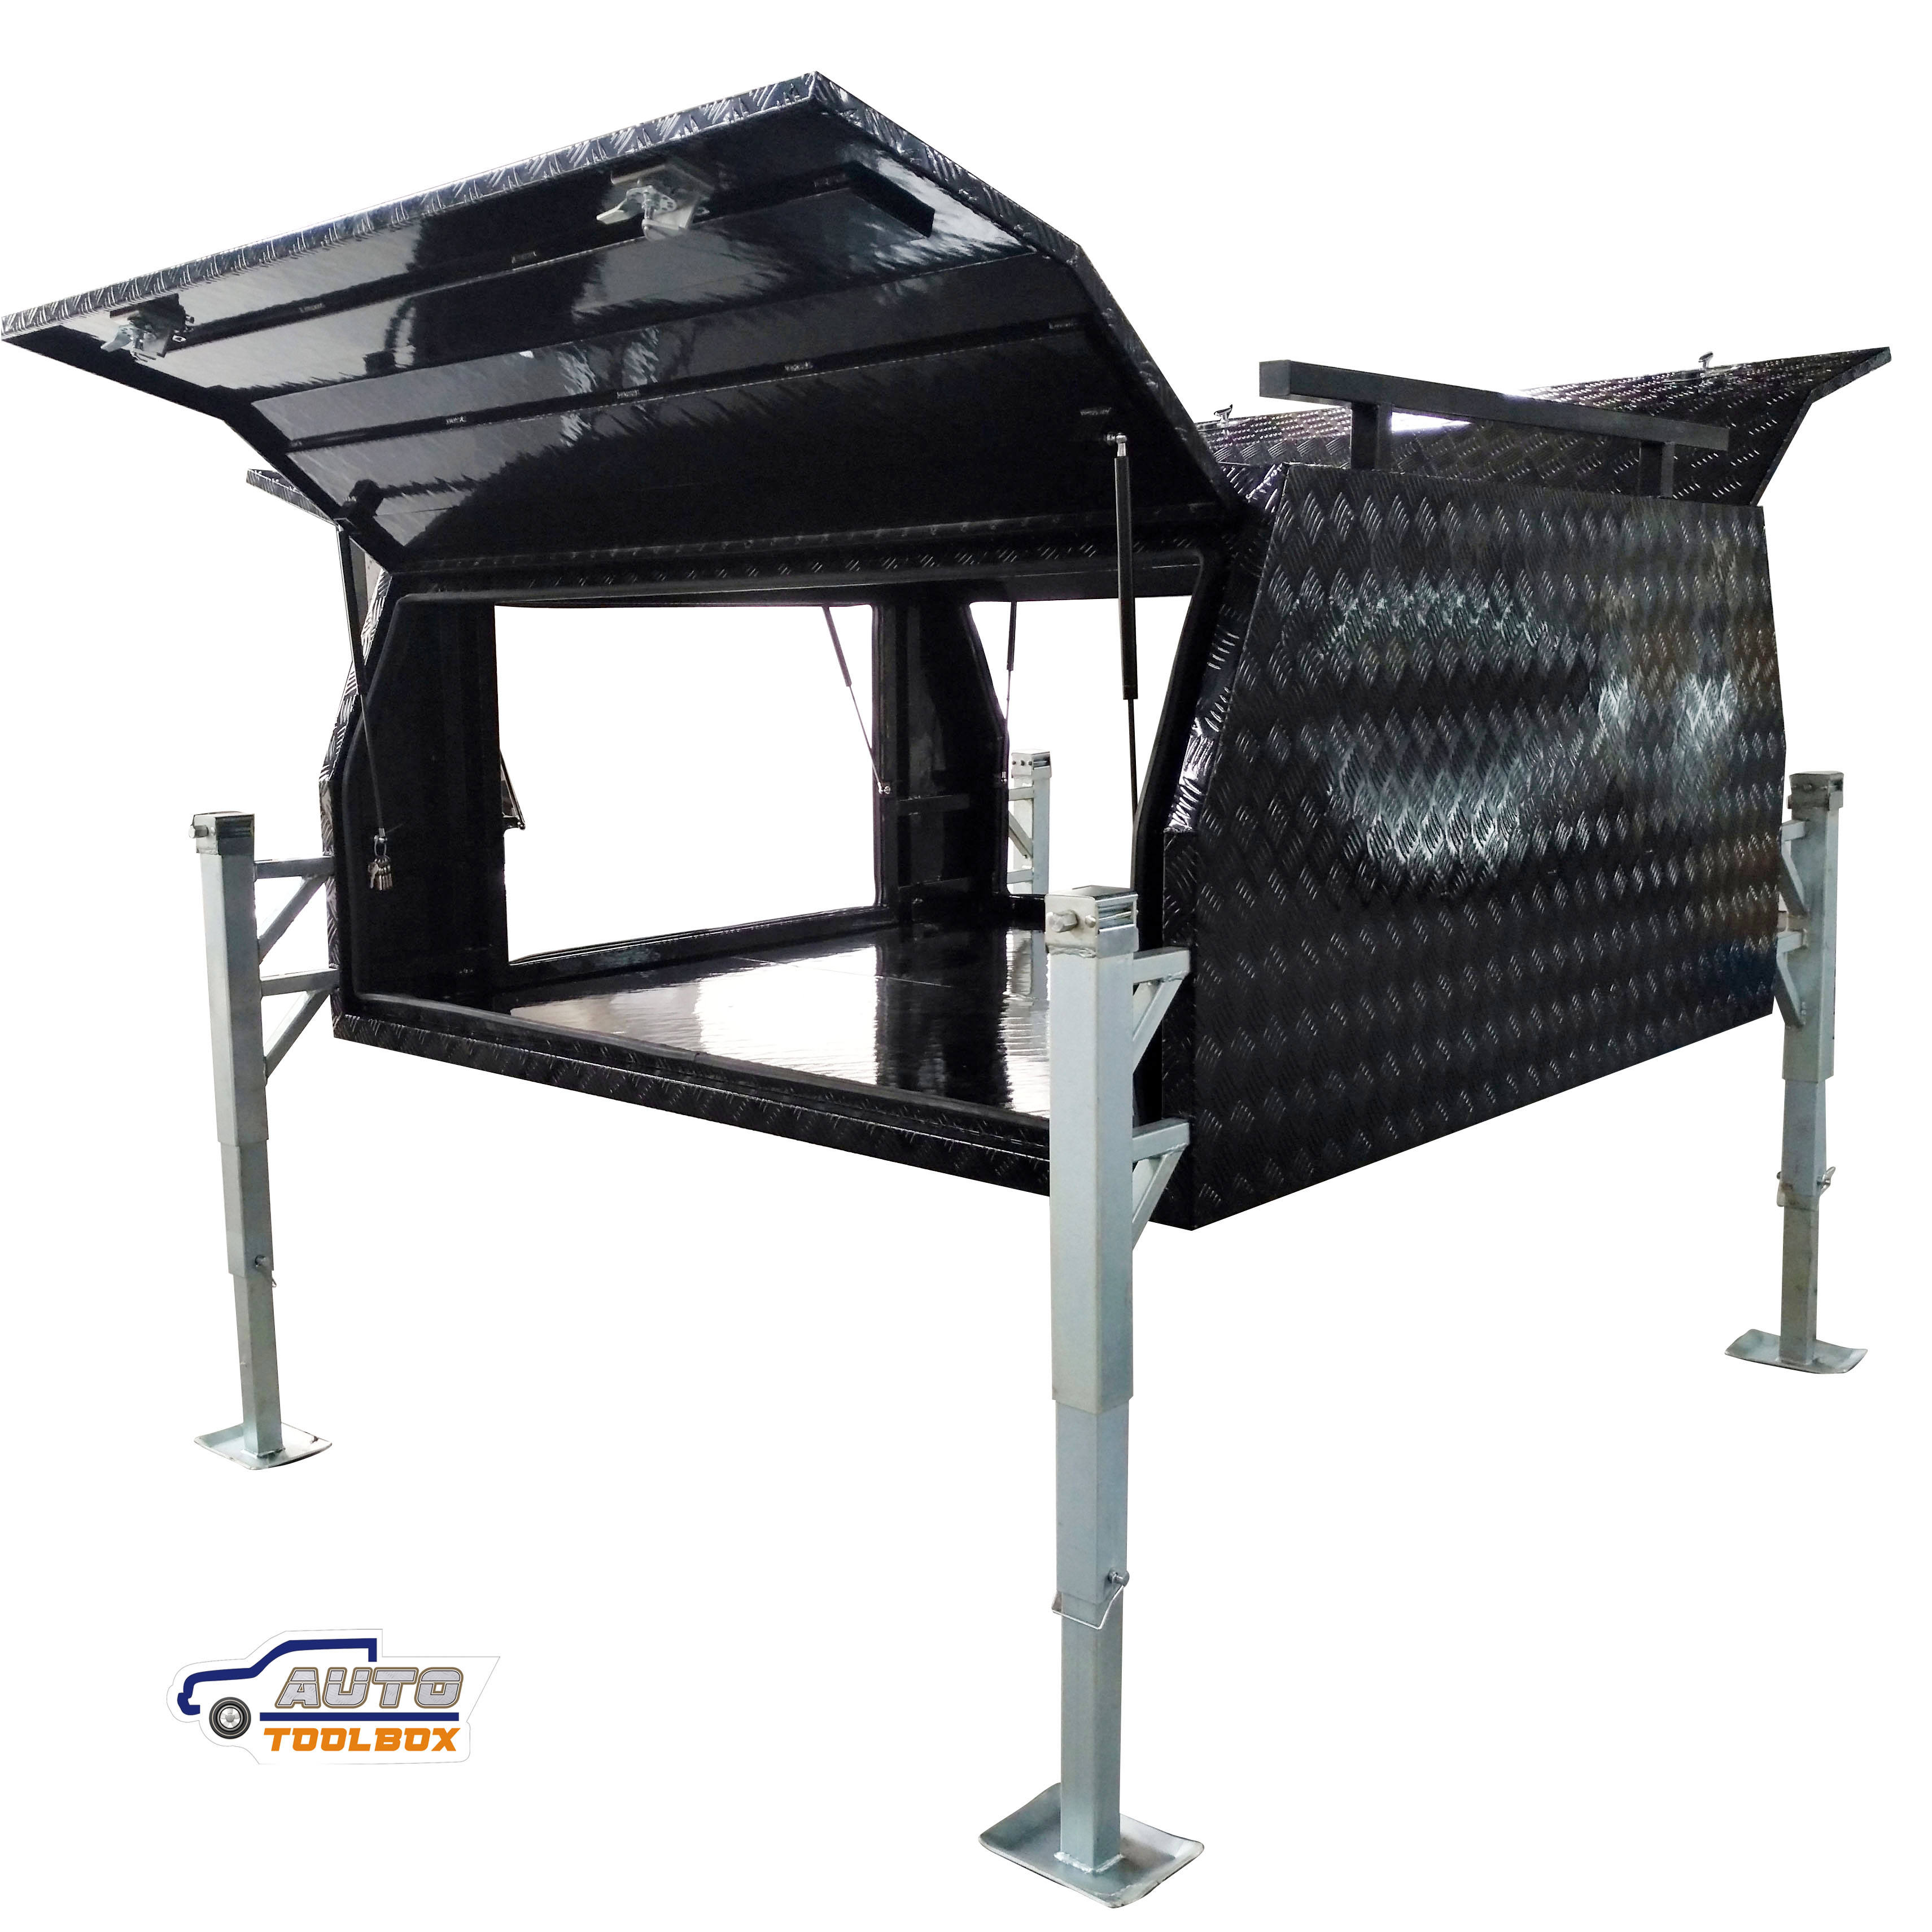 Waterproof Aluminum Powder Coat Truck Tool Box Truck Canopy with three doors BH-C2100JB